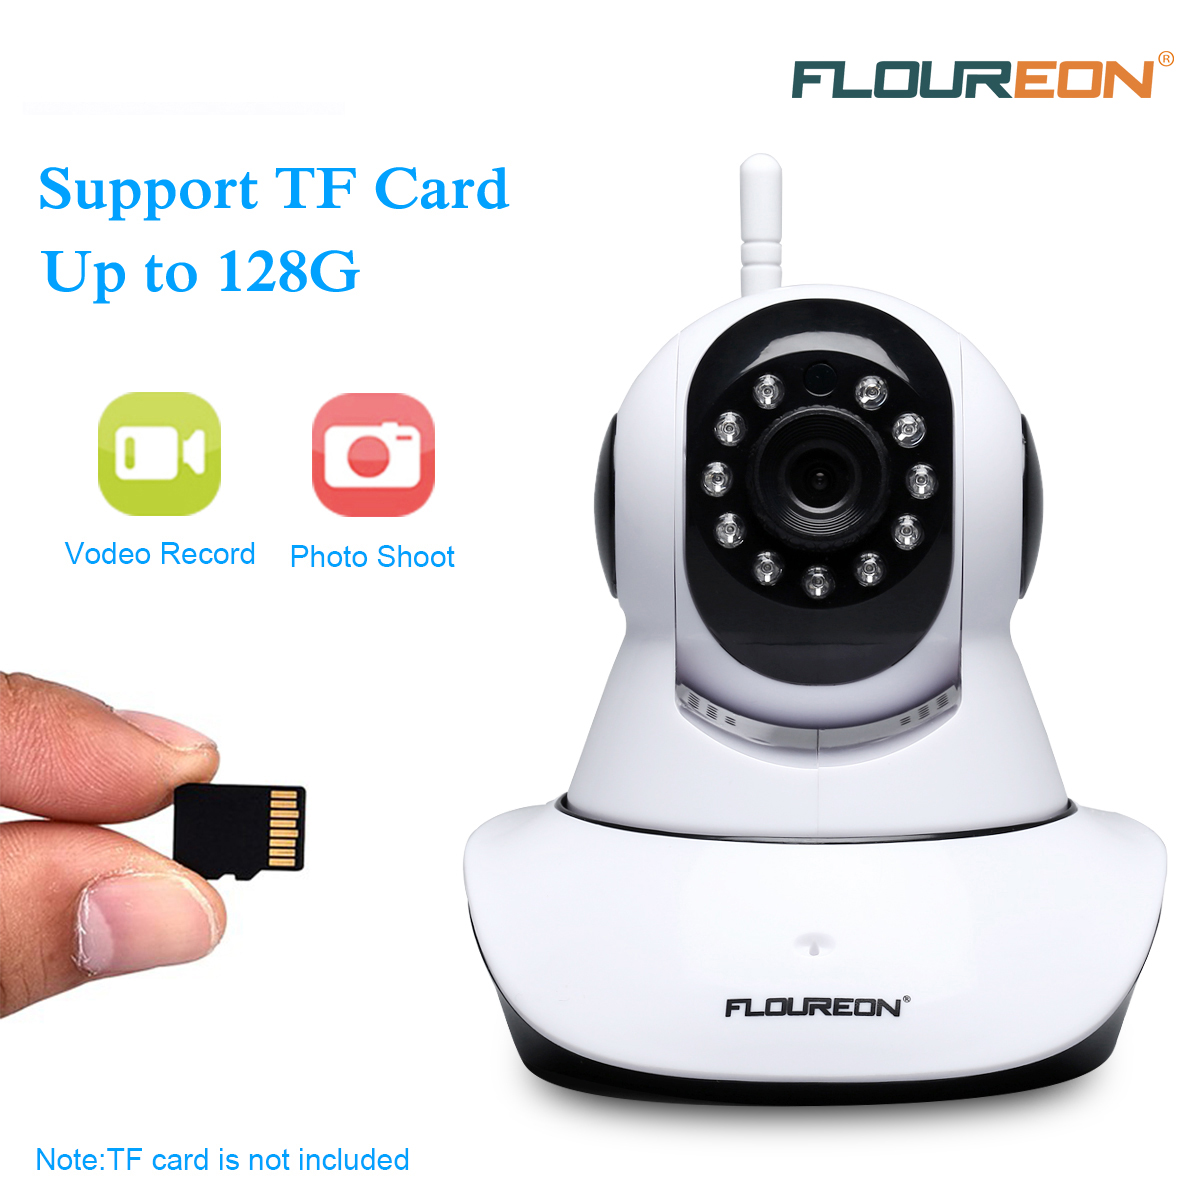 FLOUREON Wireless IP Security Camera ONVIF 720P WiFi IP Camera Pan/Tilt Two-Way Audio & Night Vision Baby/Elder/Pet/Nanny Monitor